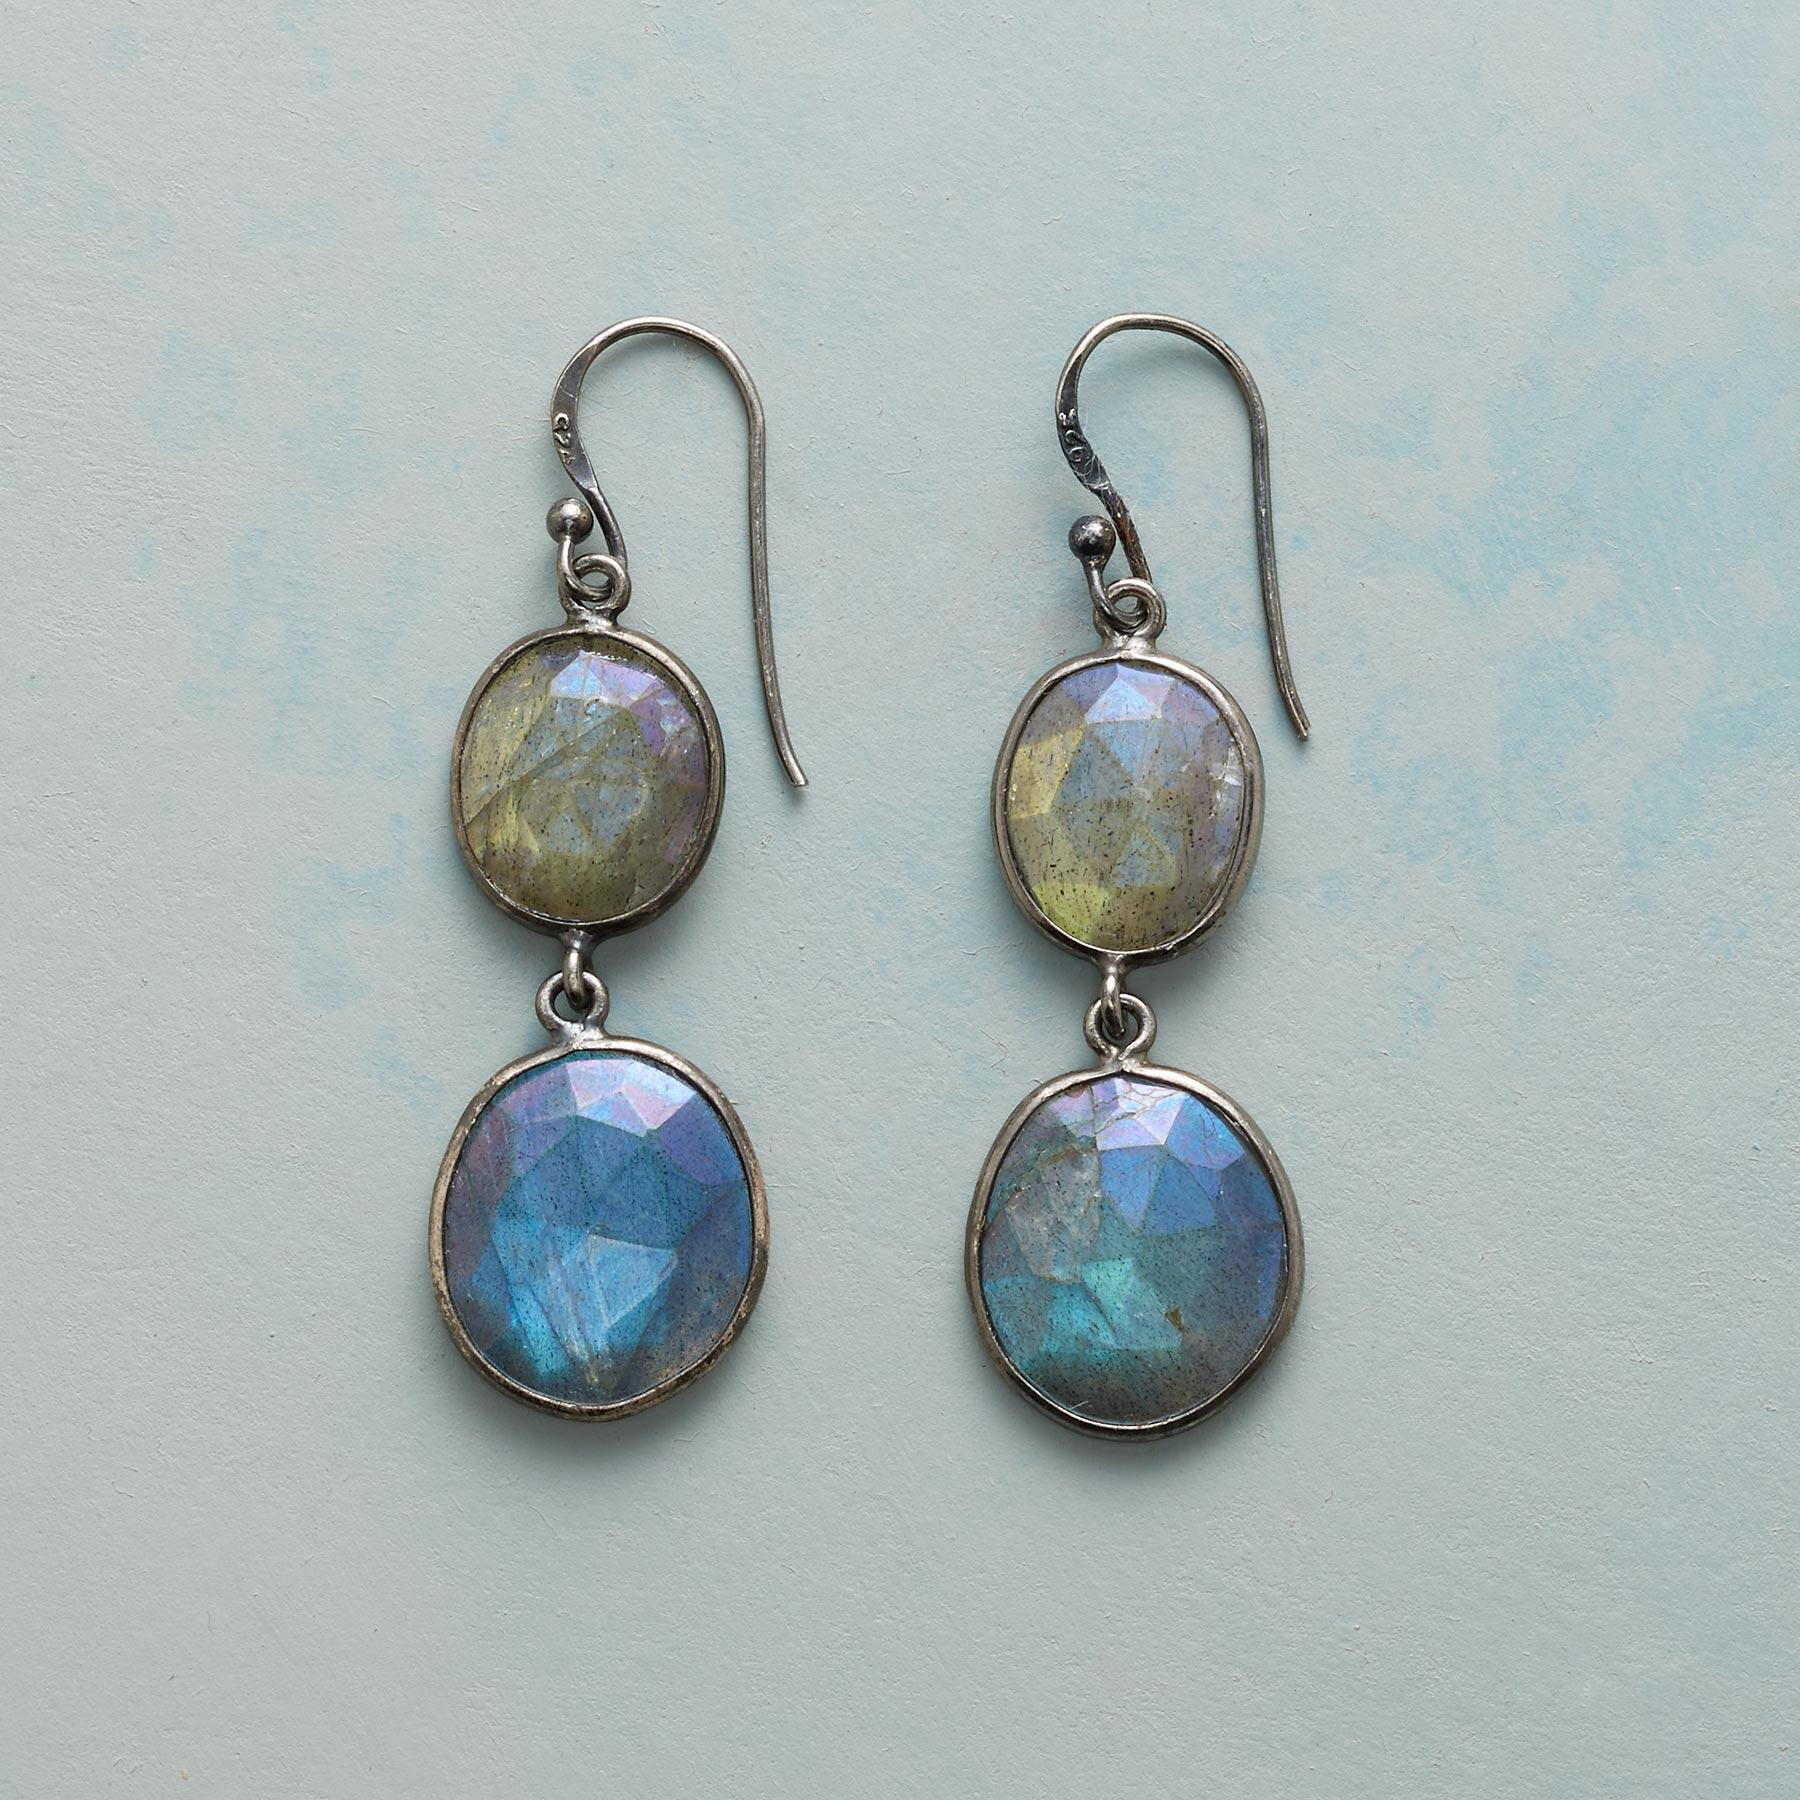 TWO OF A KIND EARRINGS: View 1